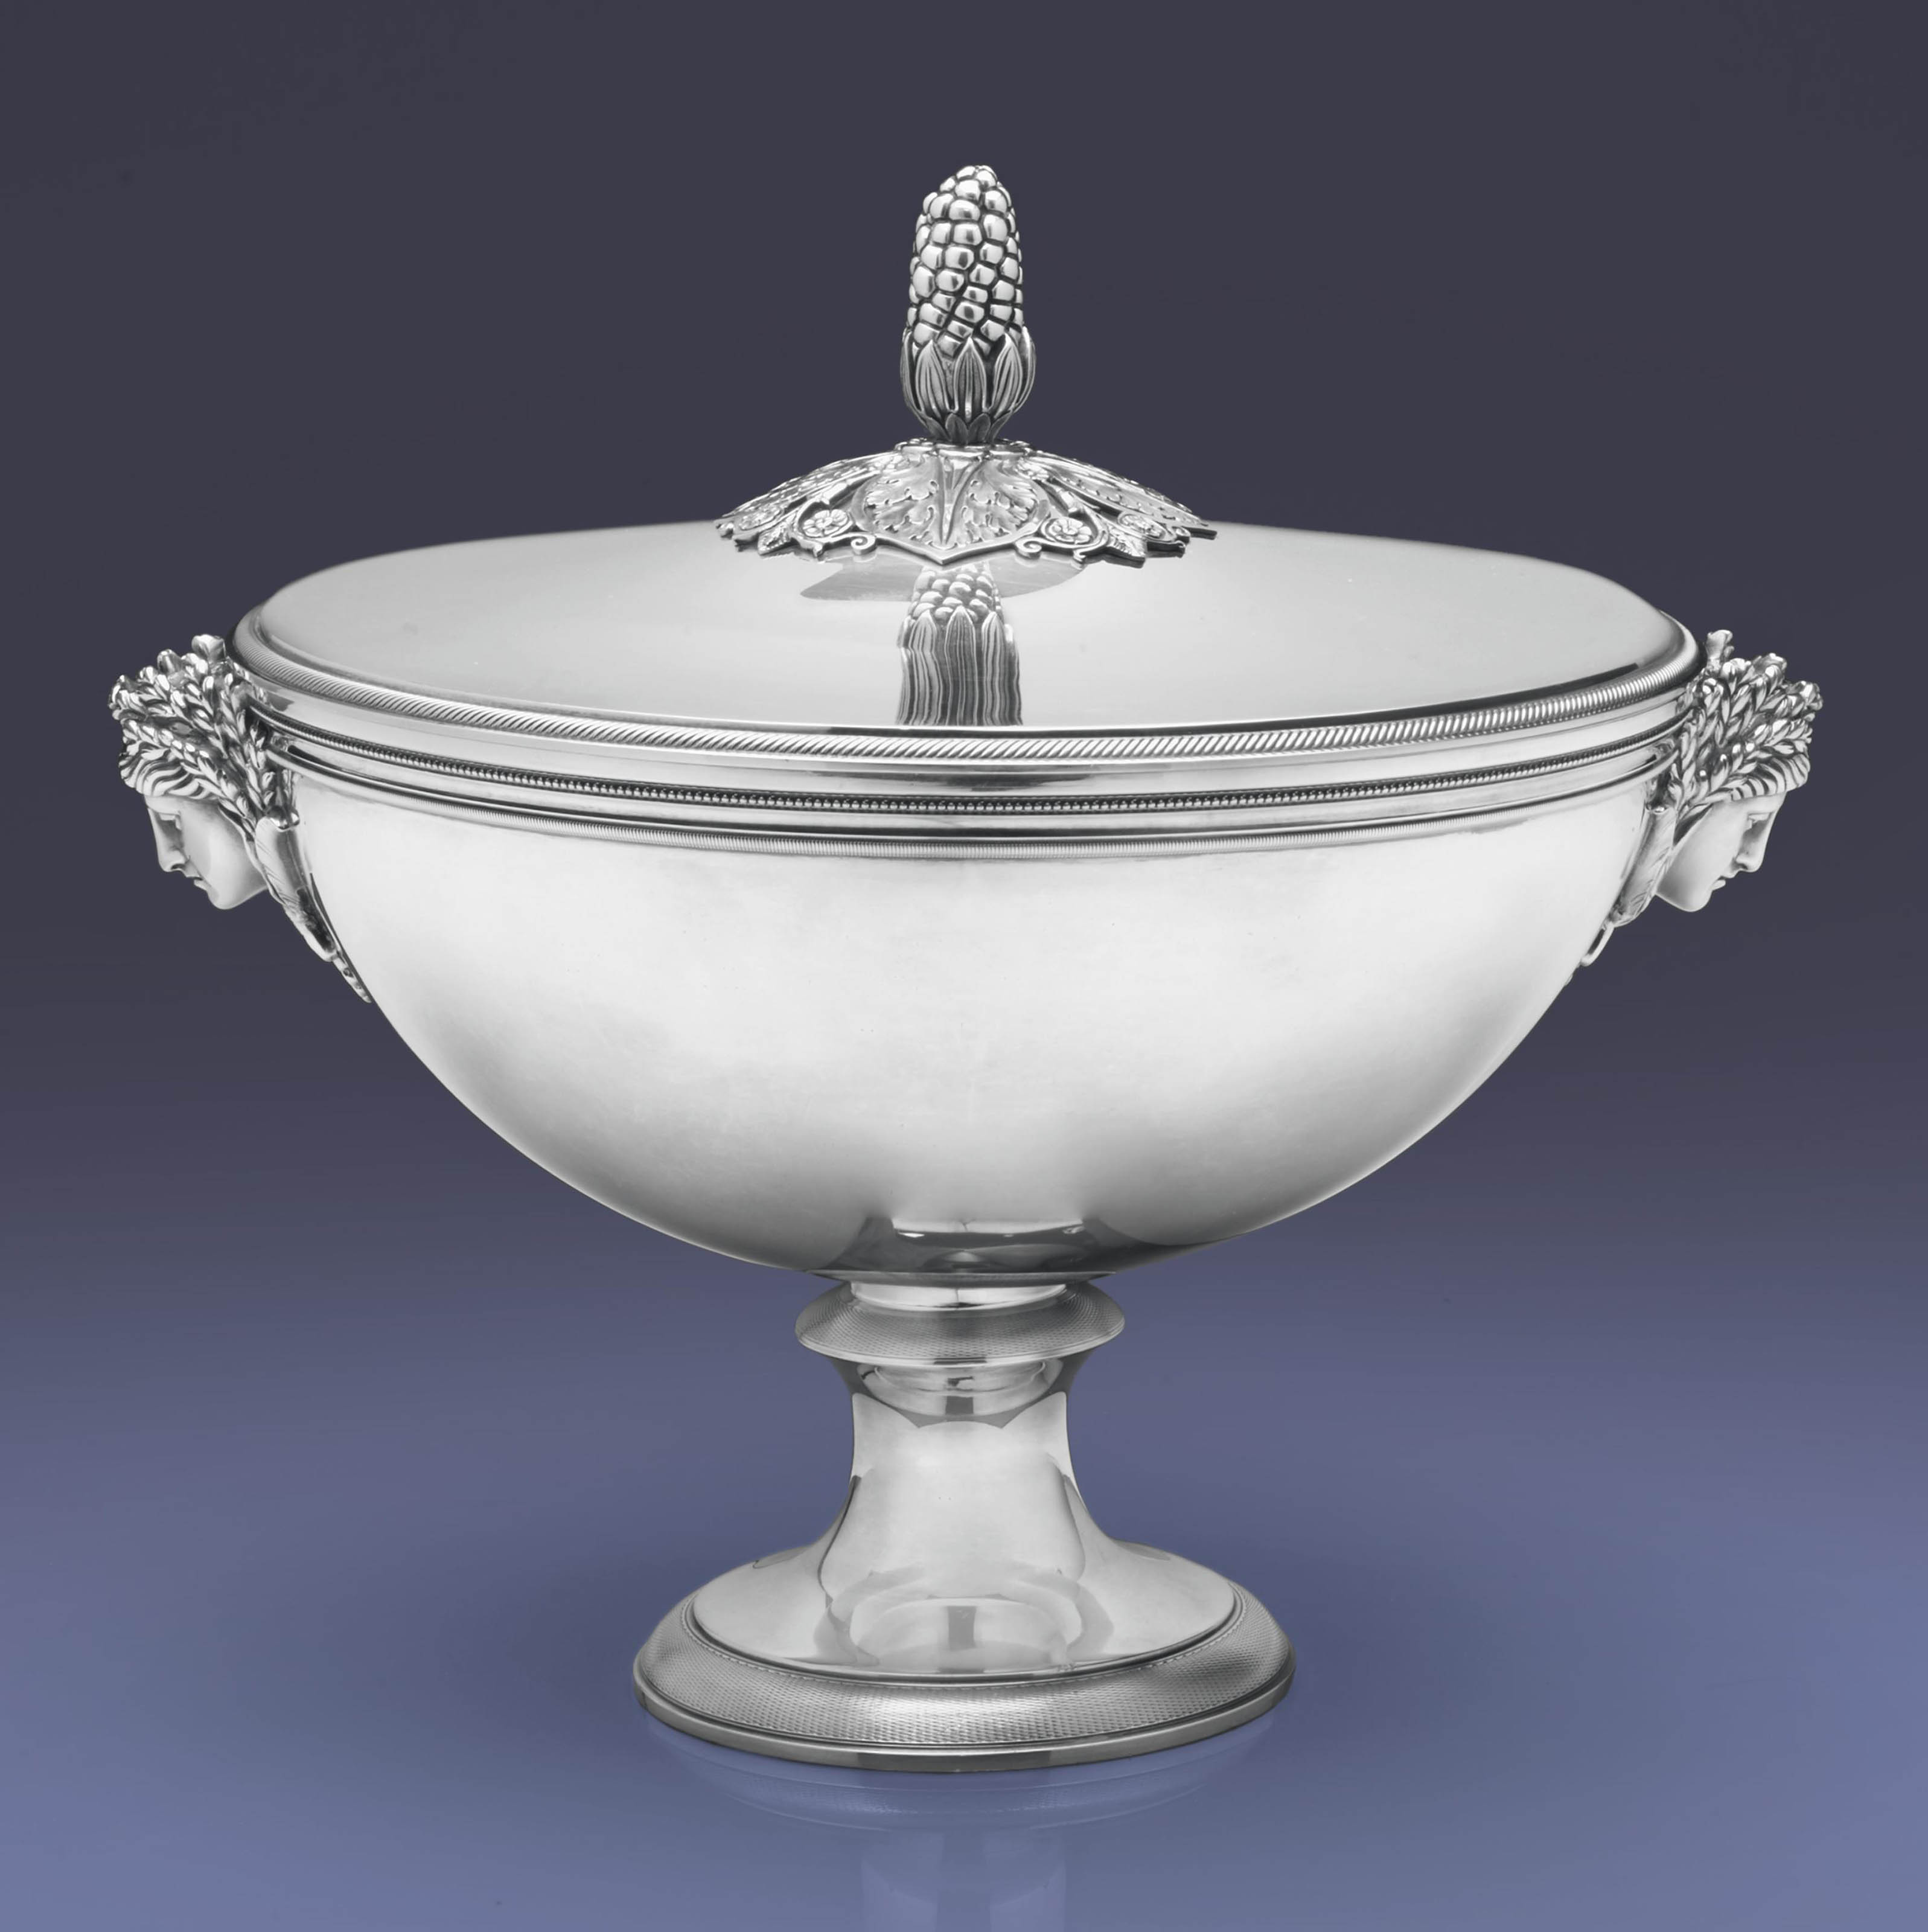 A FRENCH SILVER SOUP TUREEN